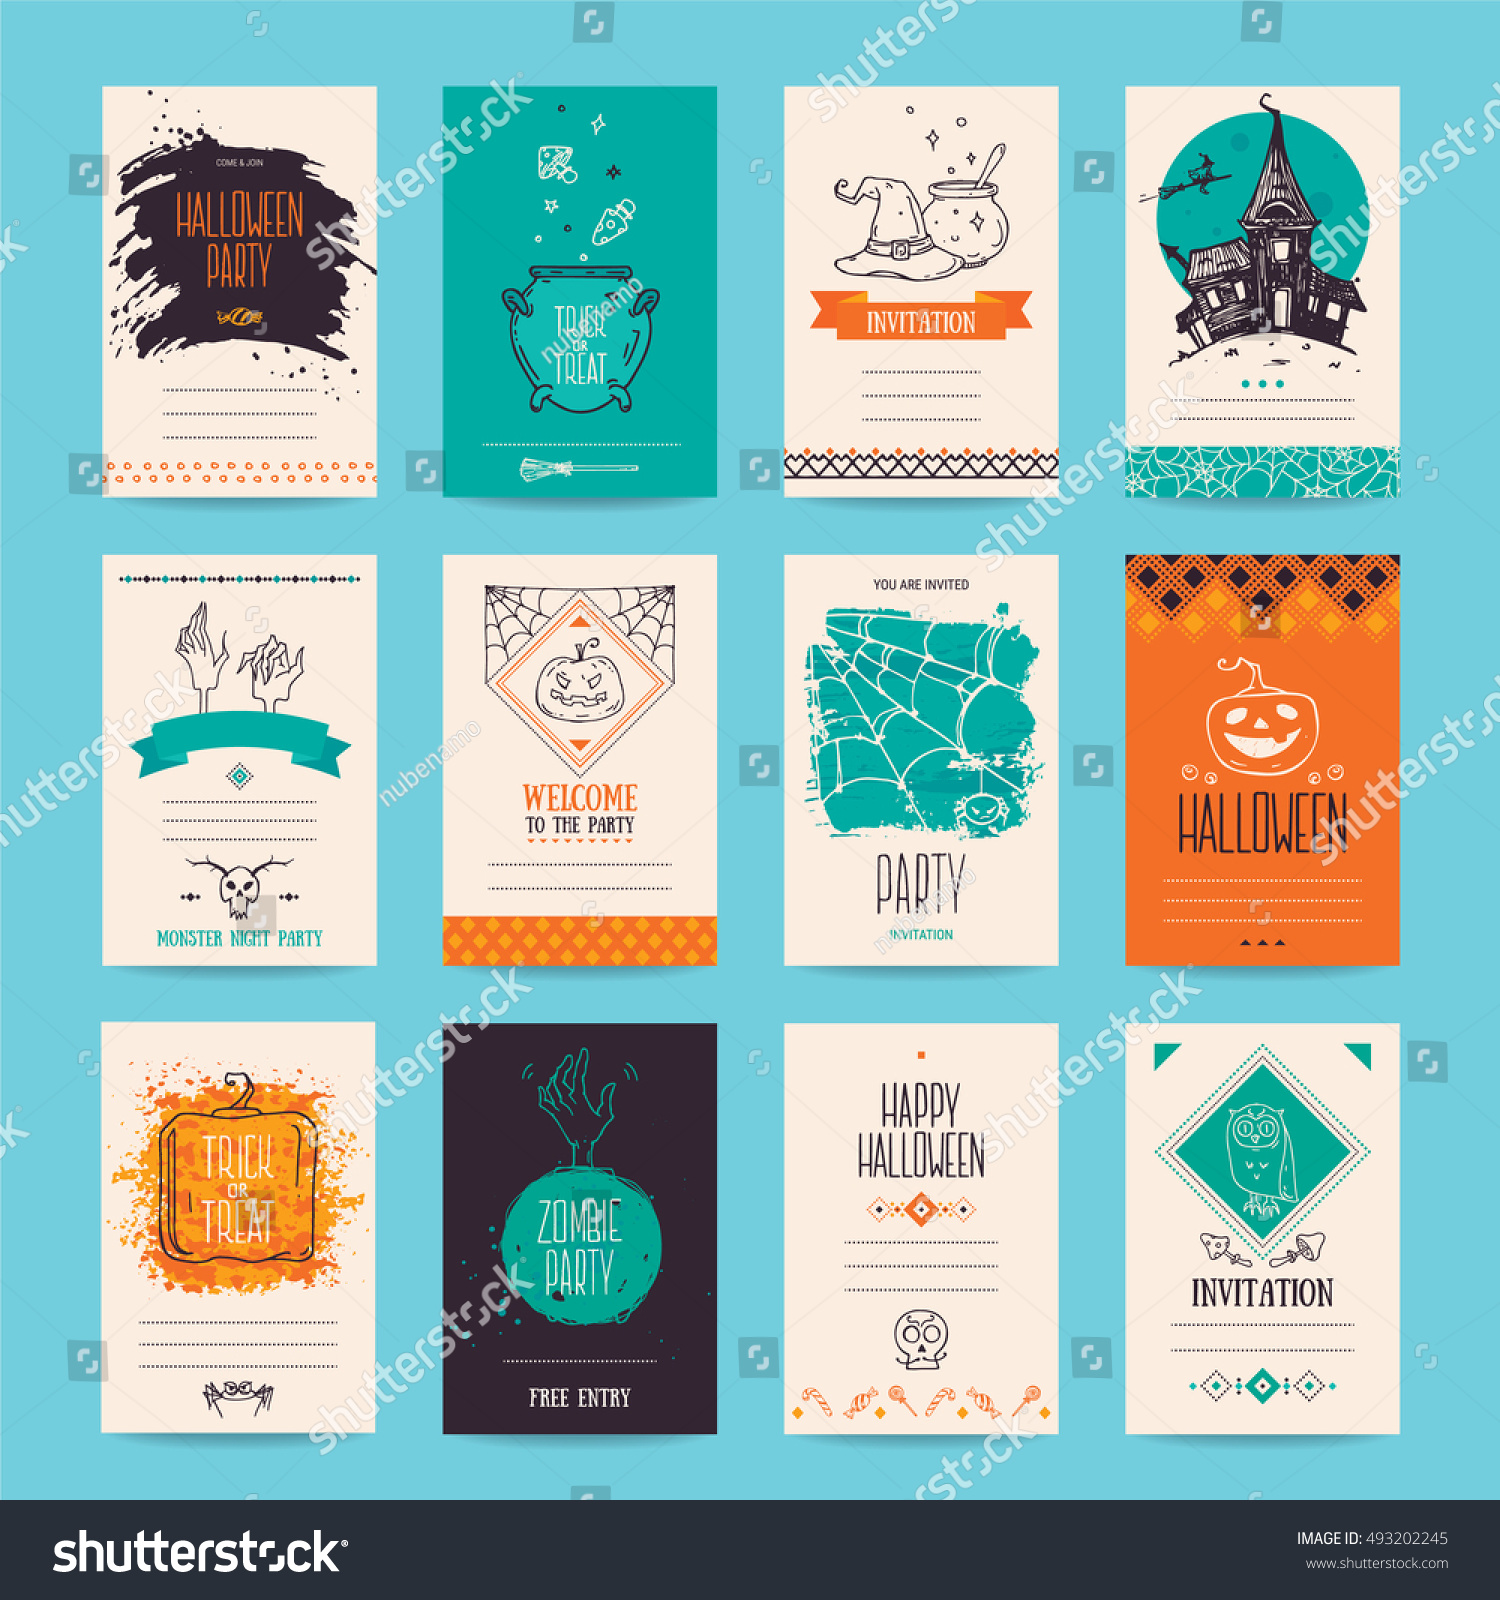 Halloween Party Invitation Greeting Card Flyer Stock Vector ...